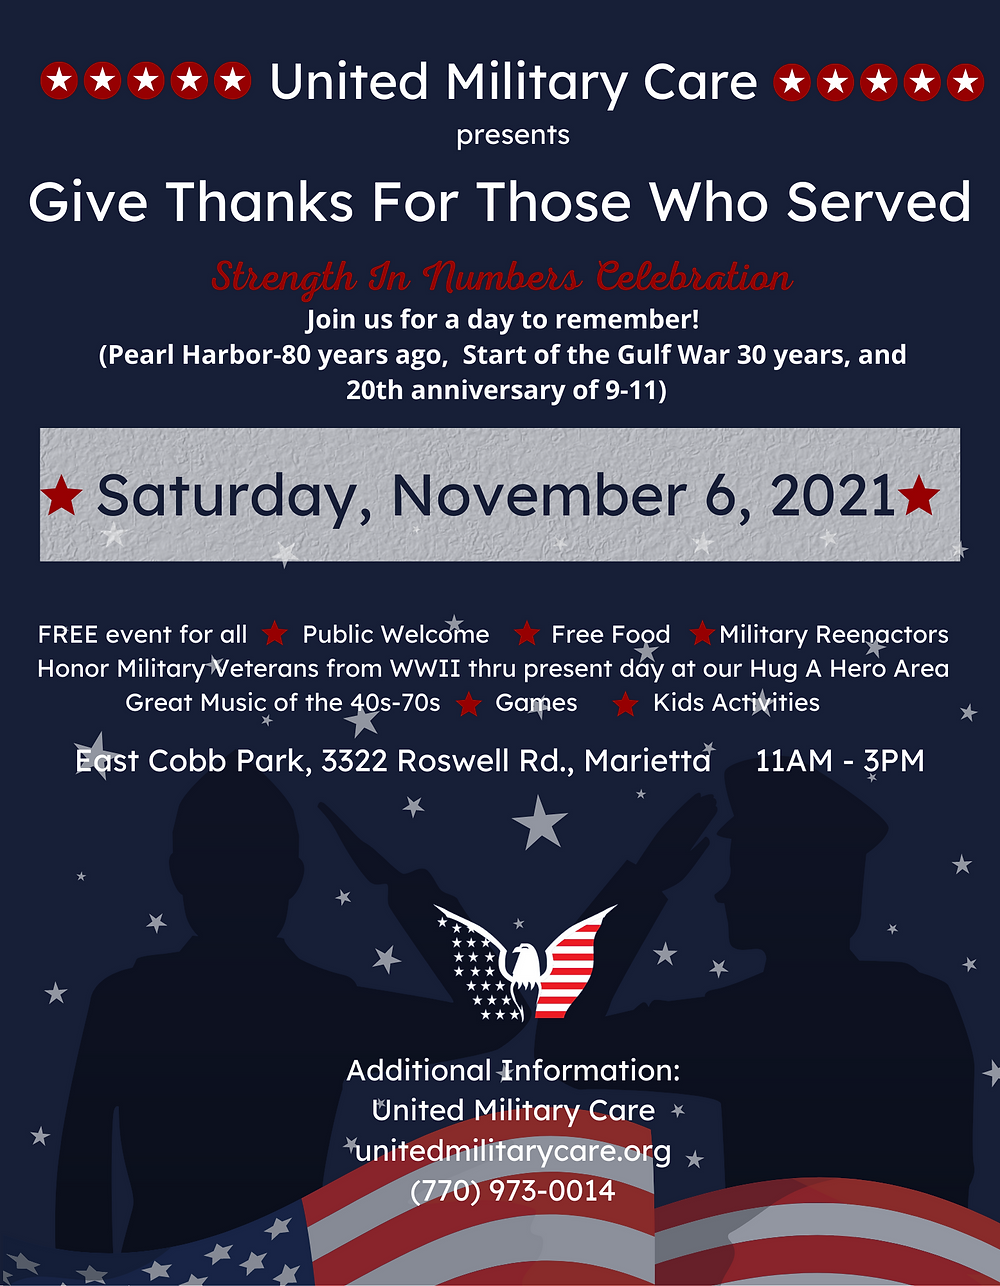 Give Thanks For Those Who Served